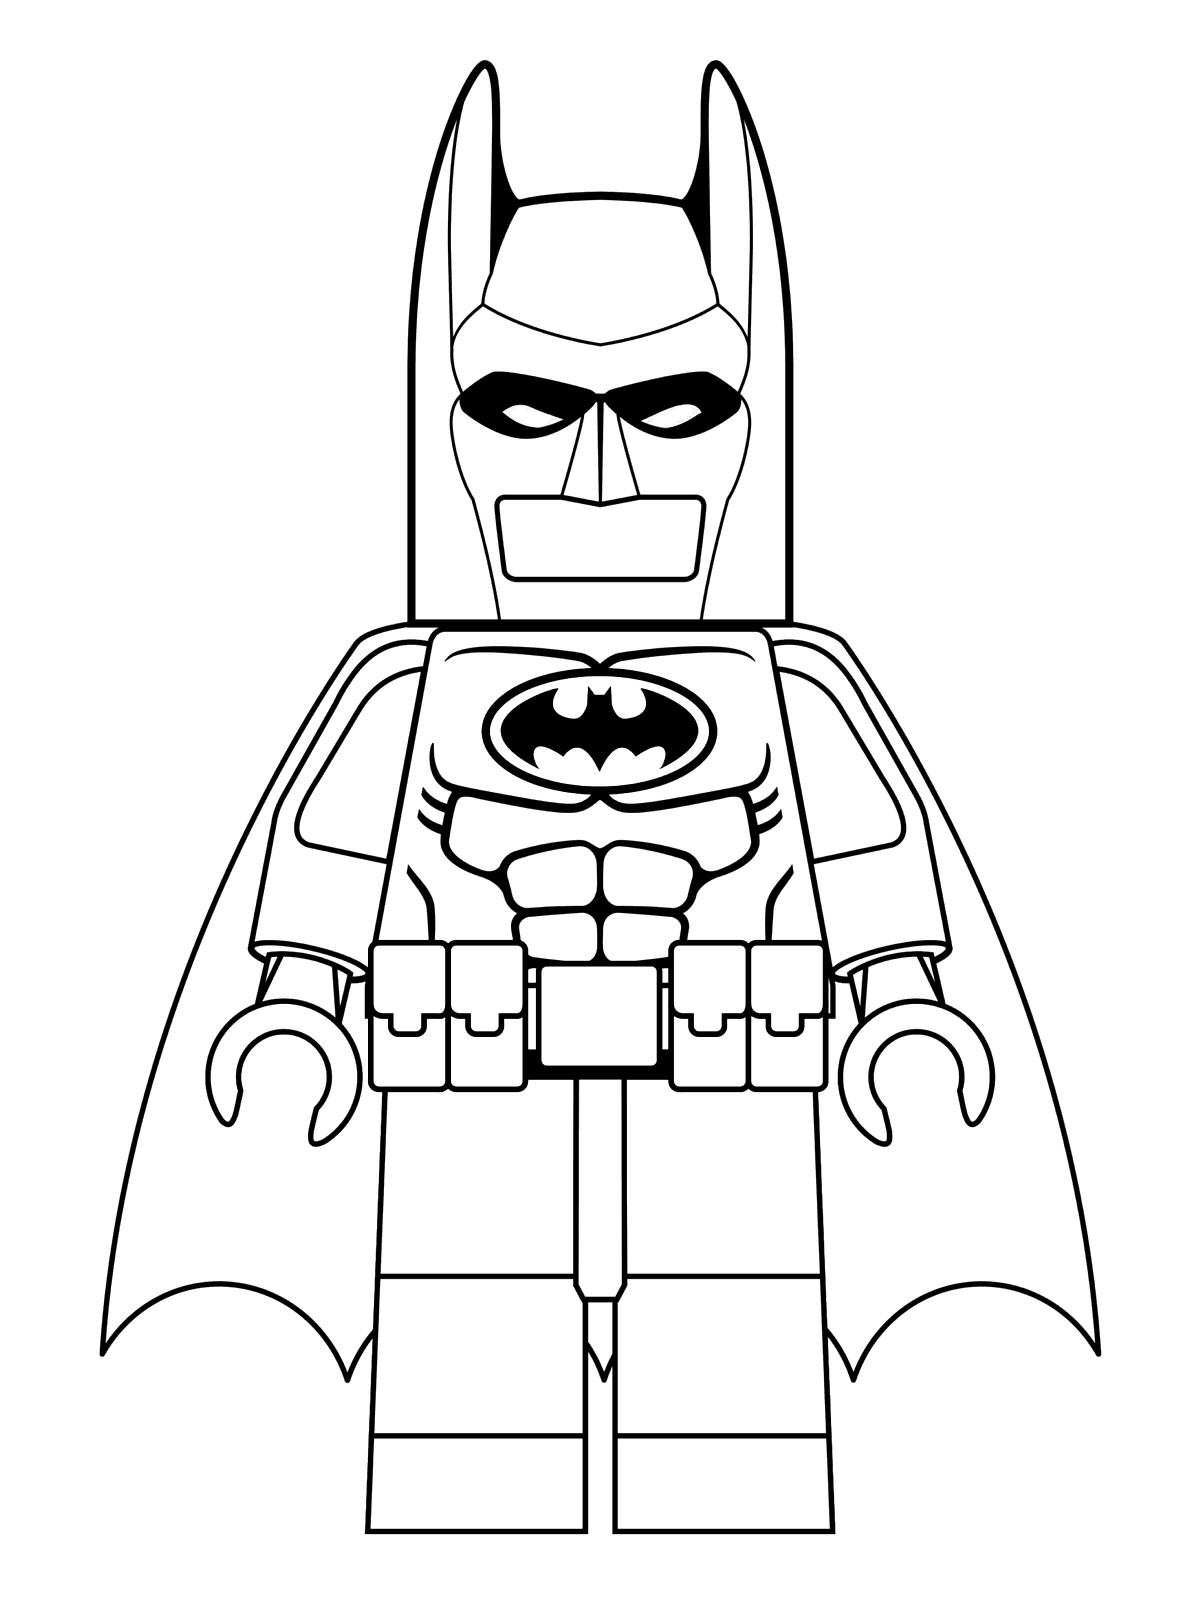 Kids n funcom All coloring pages about Superheroes